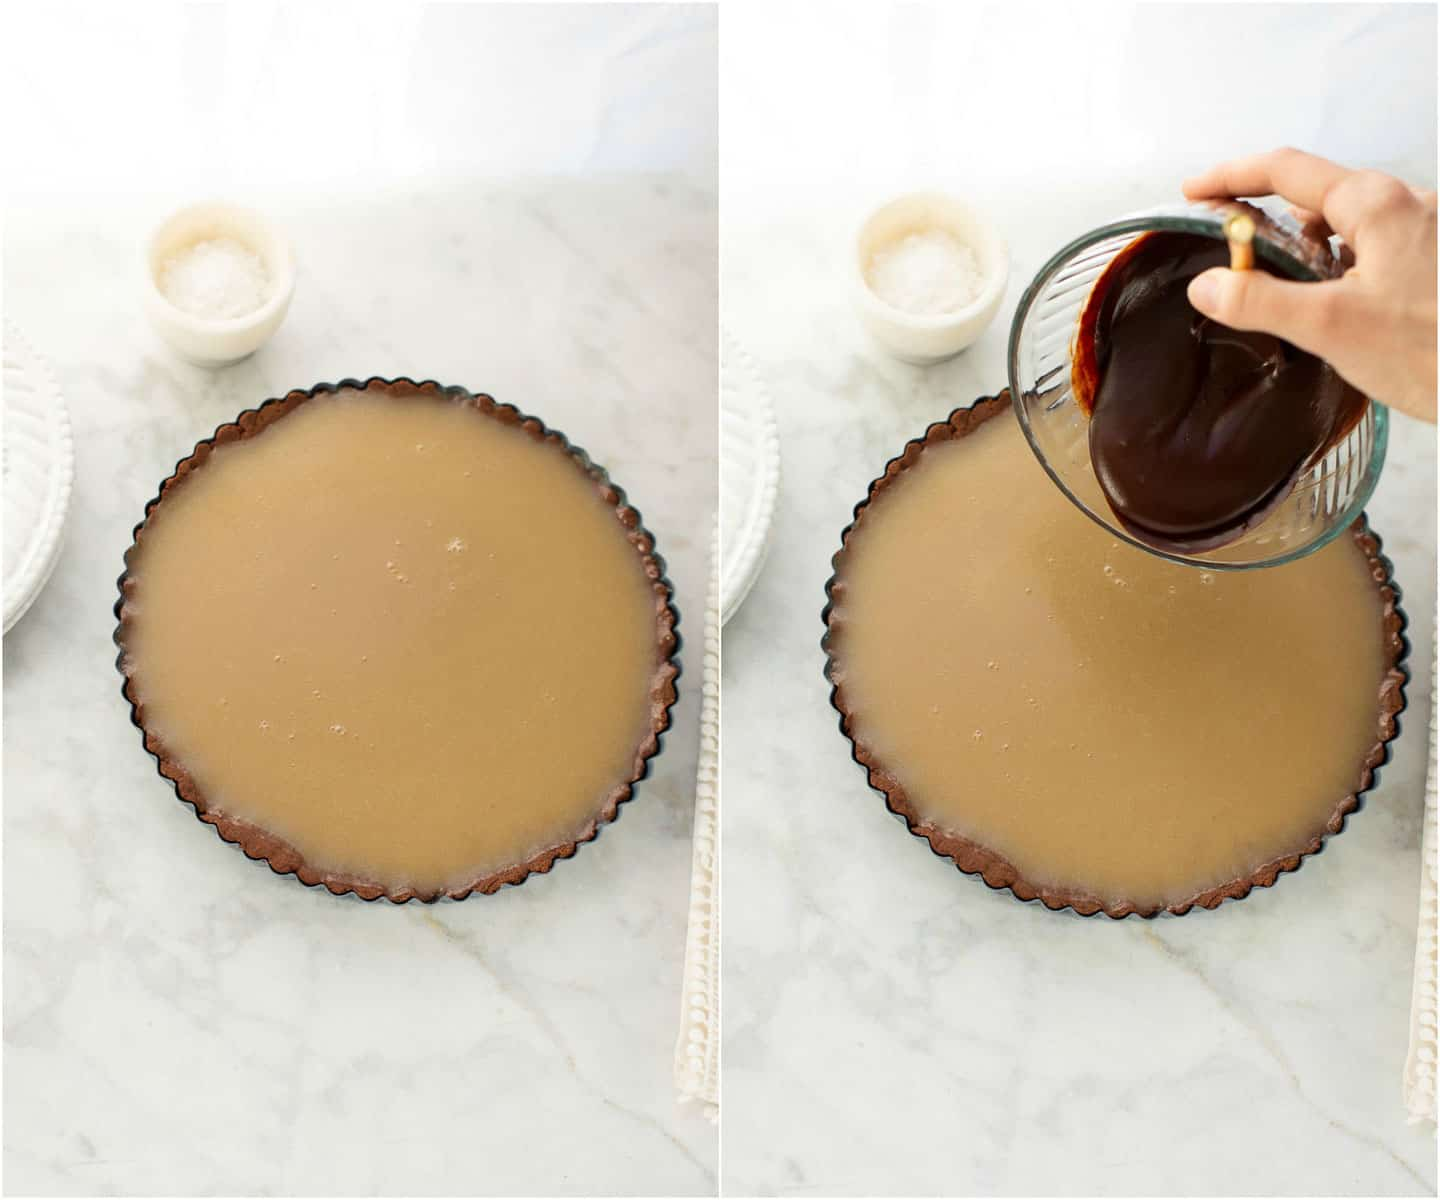 pouring chocolate over caramel in pan